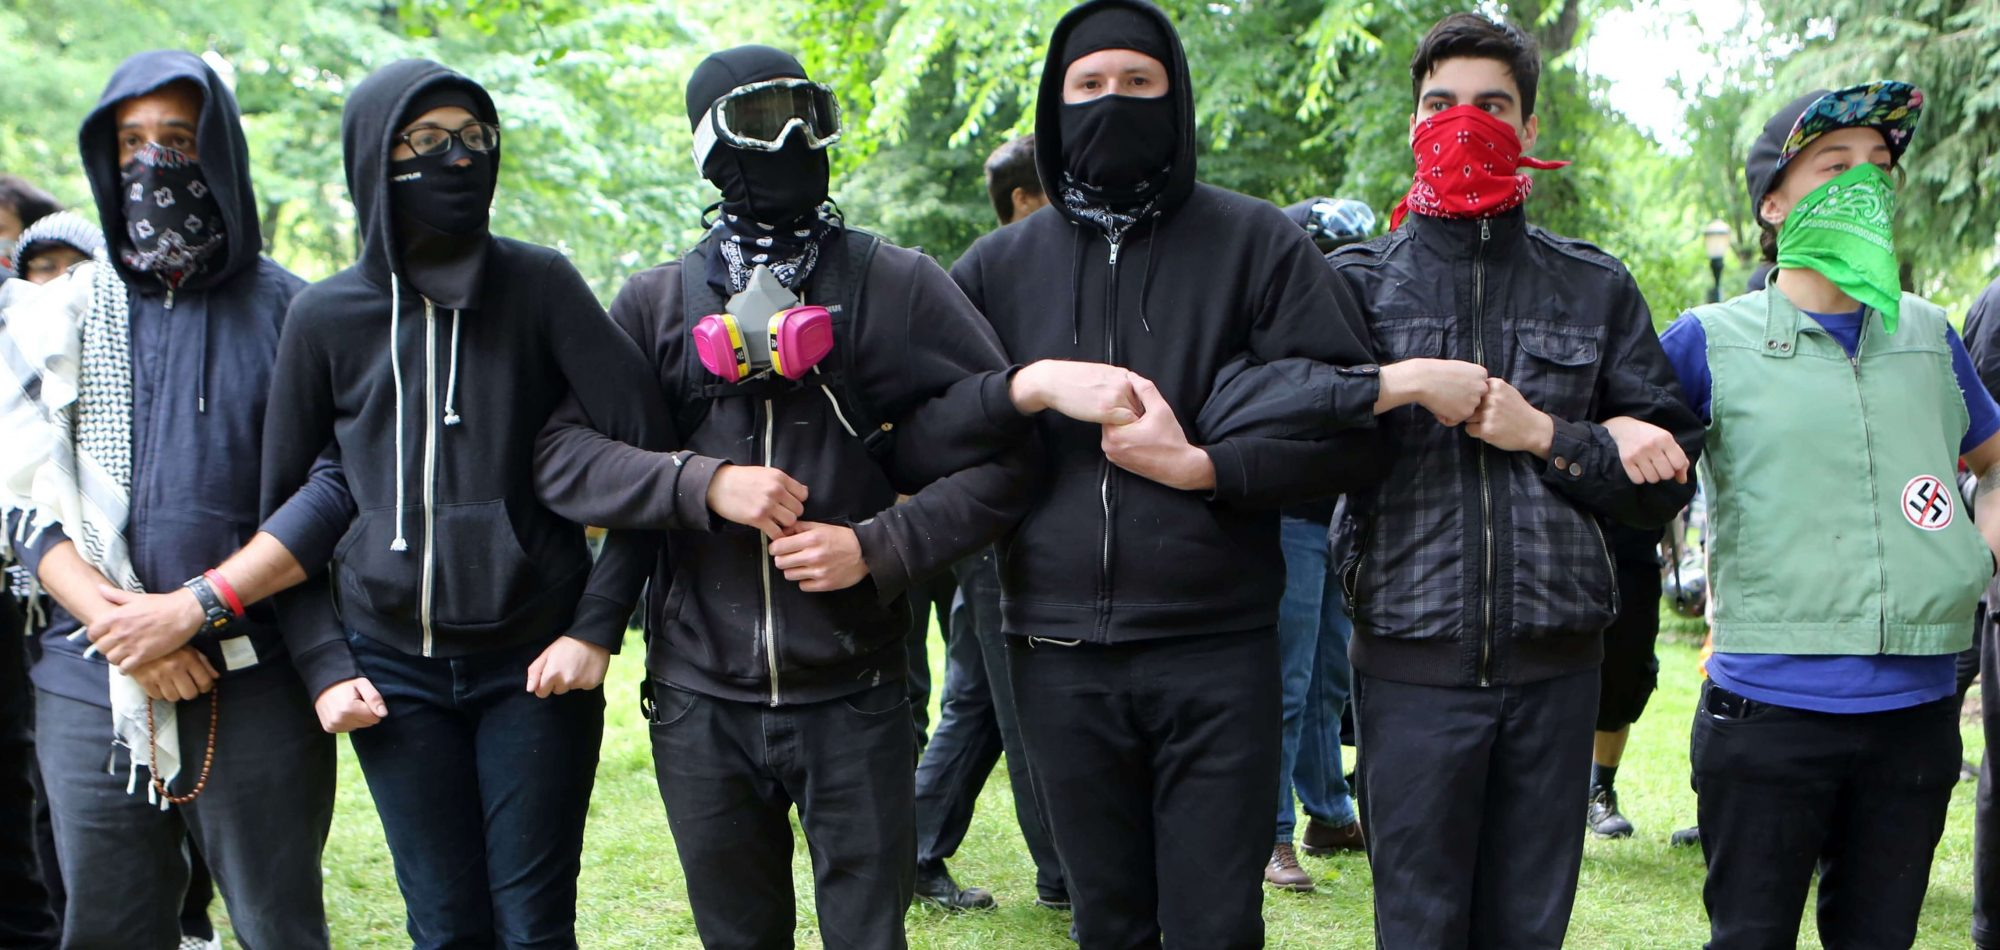 RESISTANCE EXPOSED: Who Are Antifa?